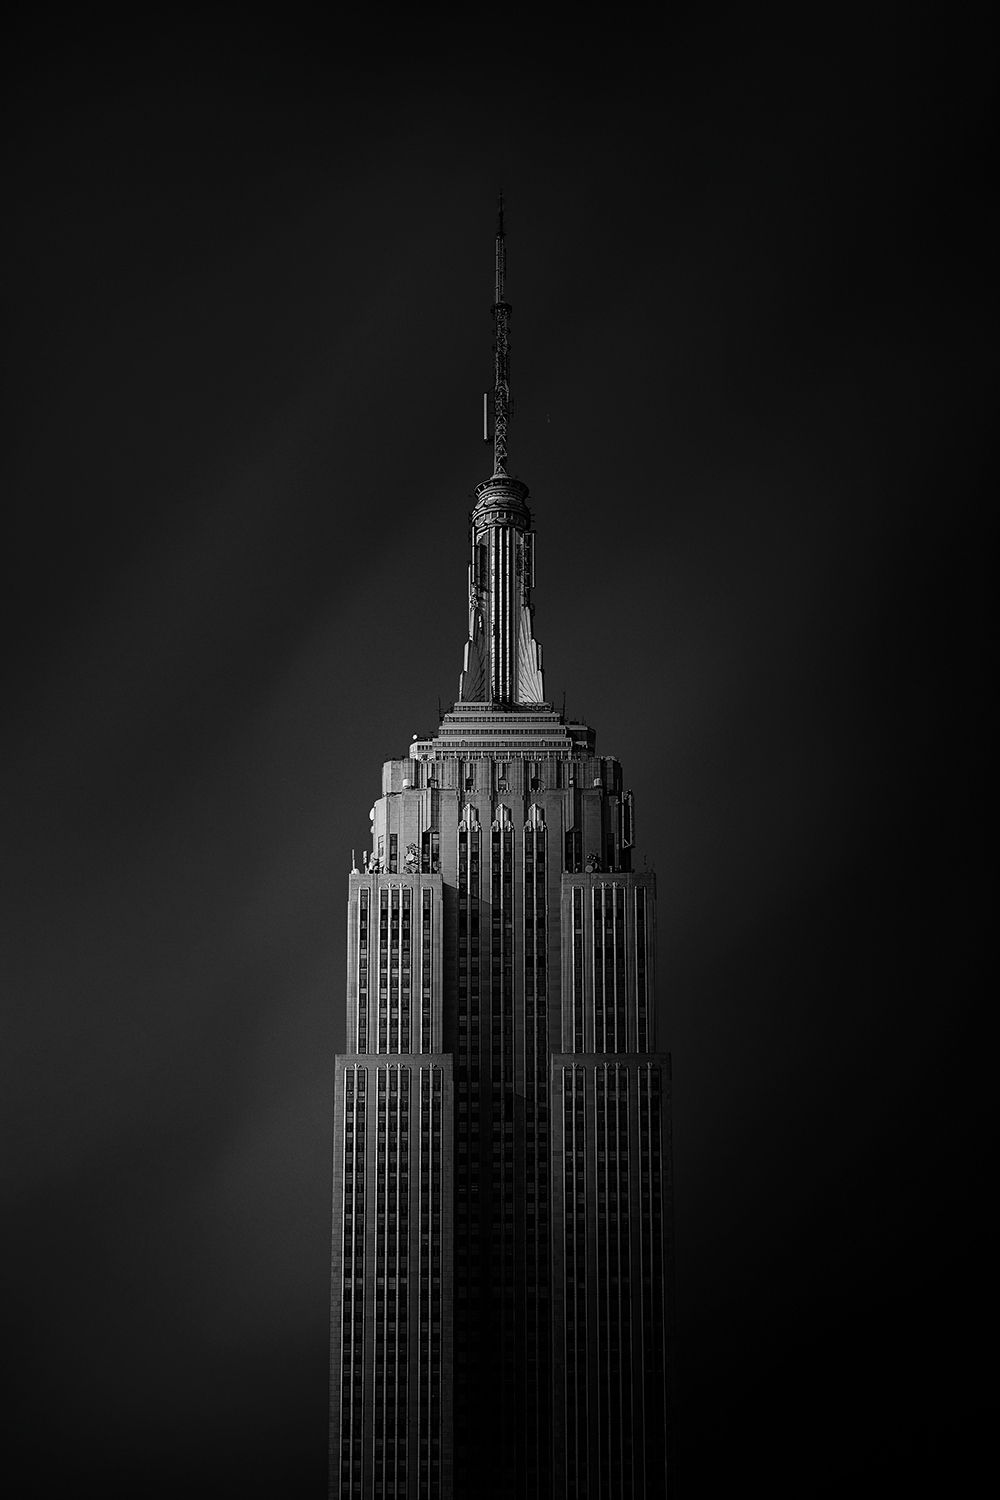 a black and white photograph showing the top of the empire state building in new york